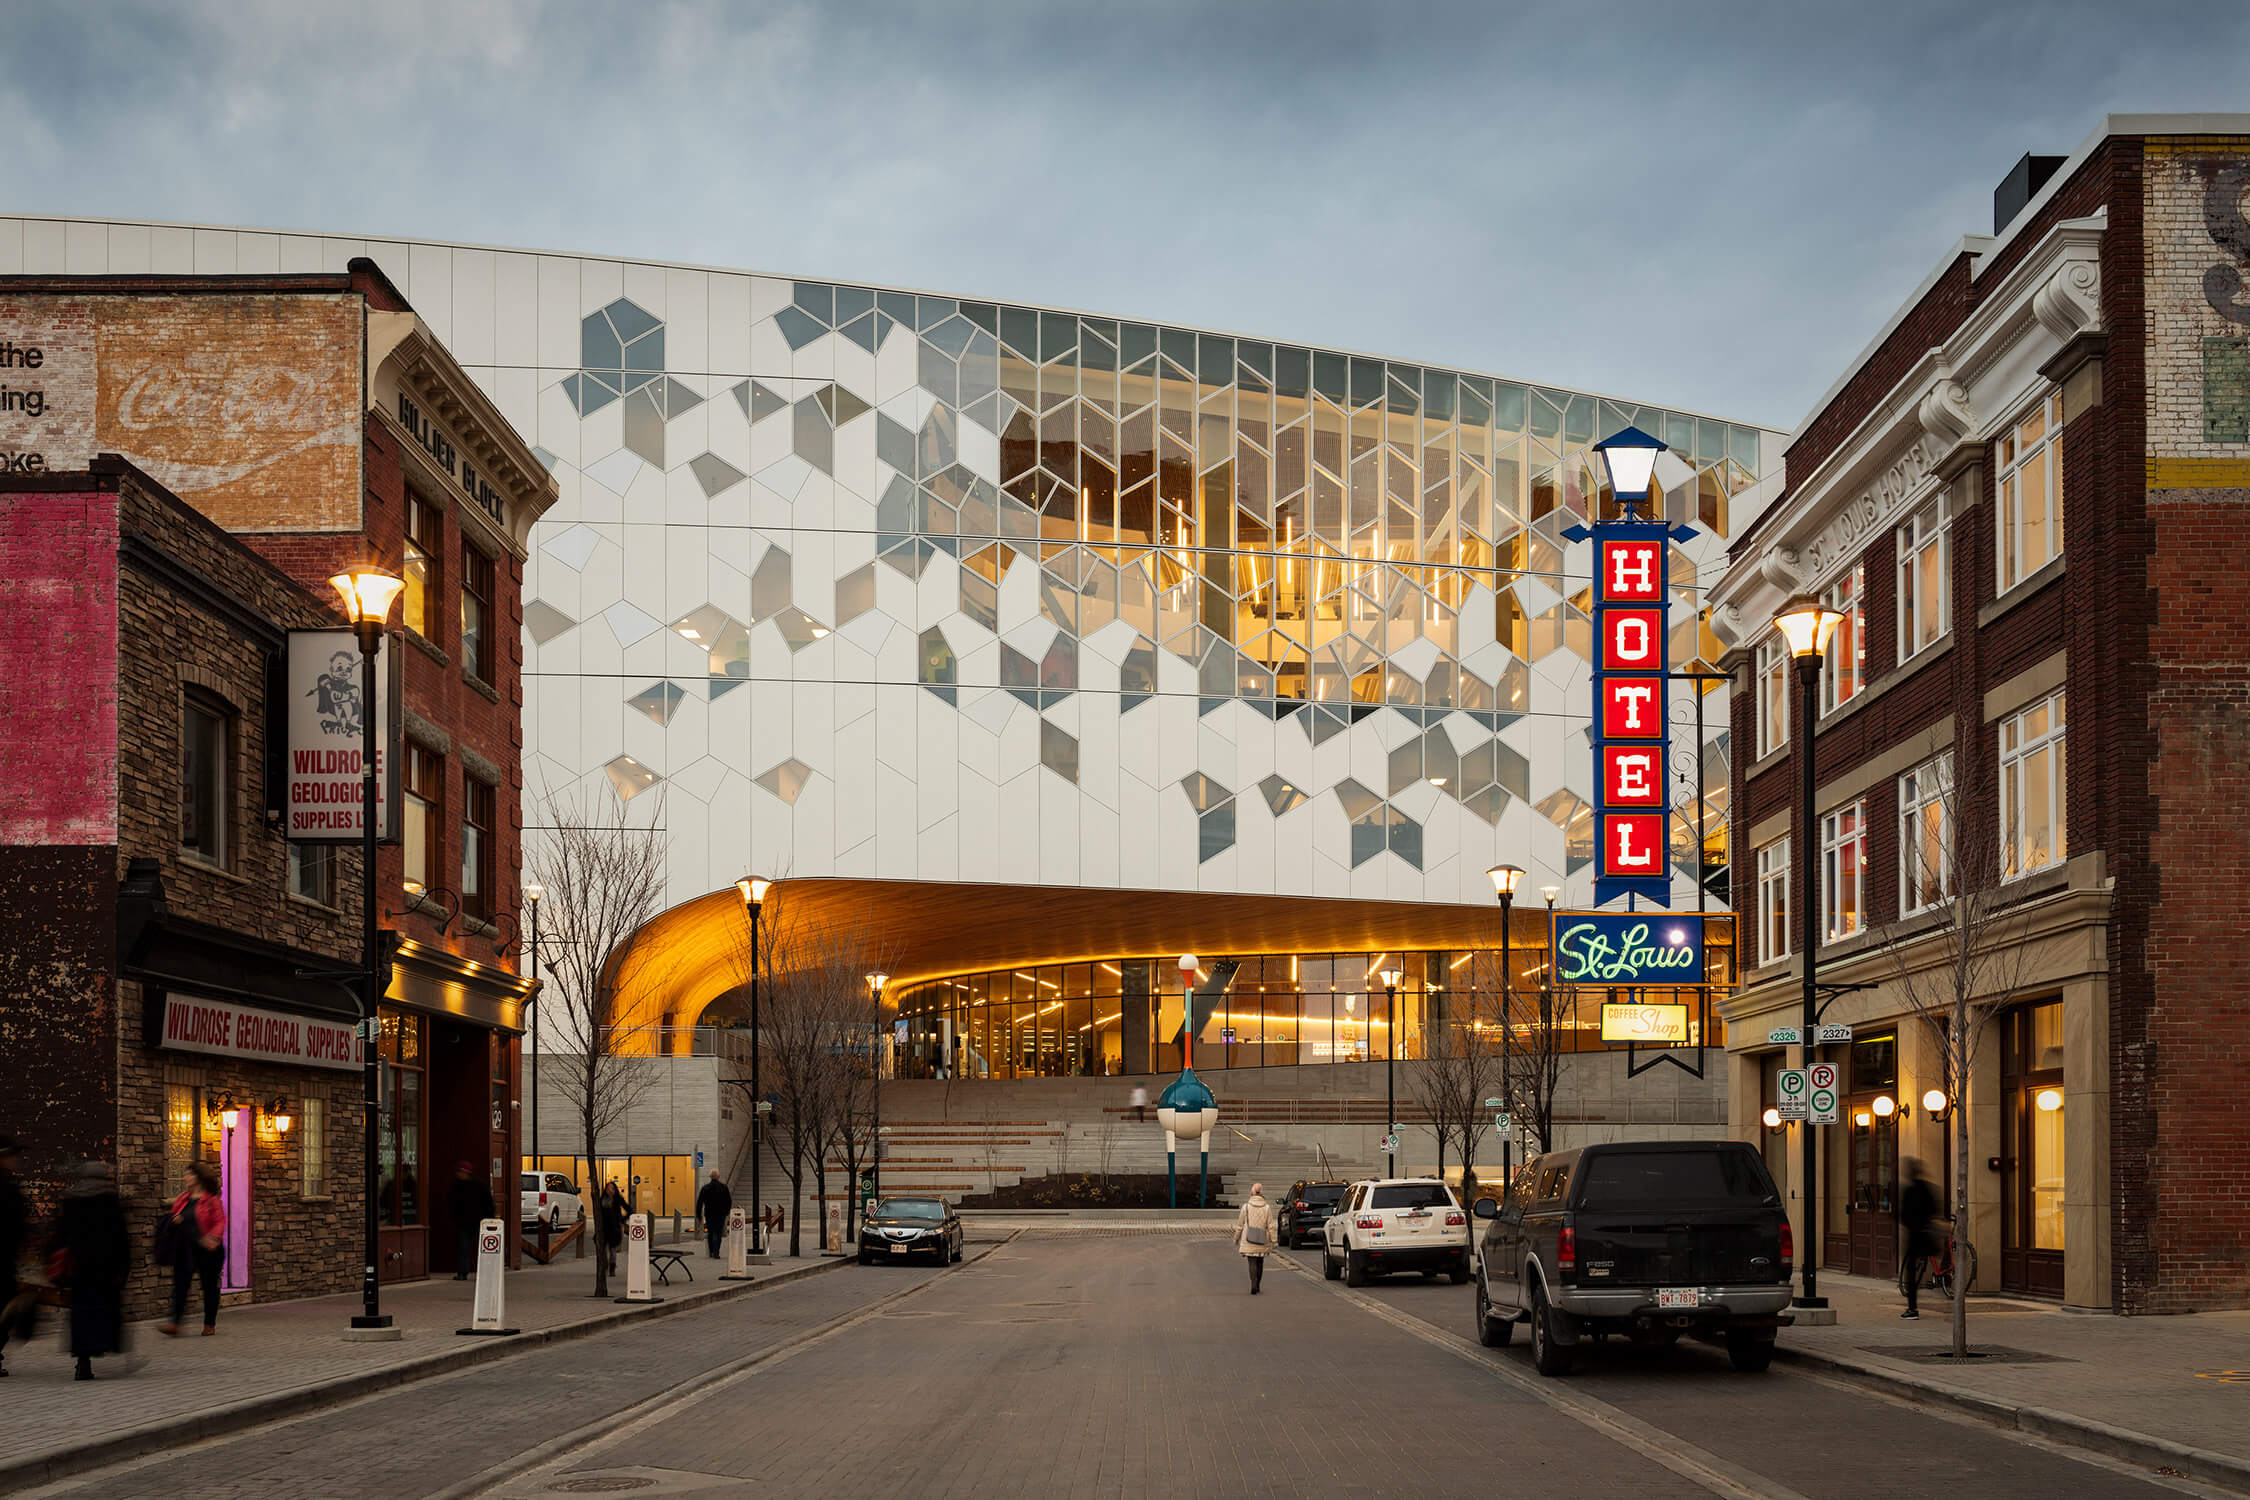 The 10 Best Canadian Architecture Projects of 2018 - Azure